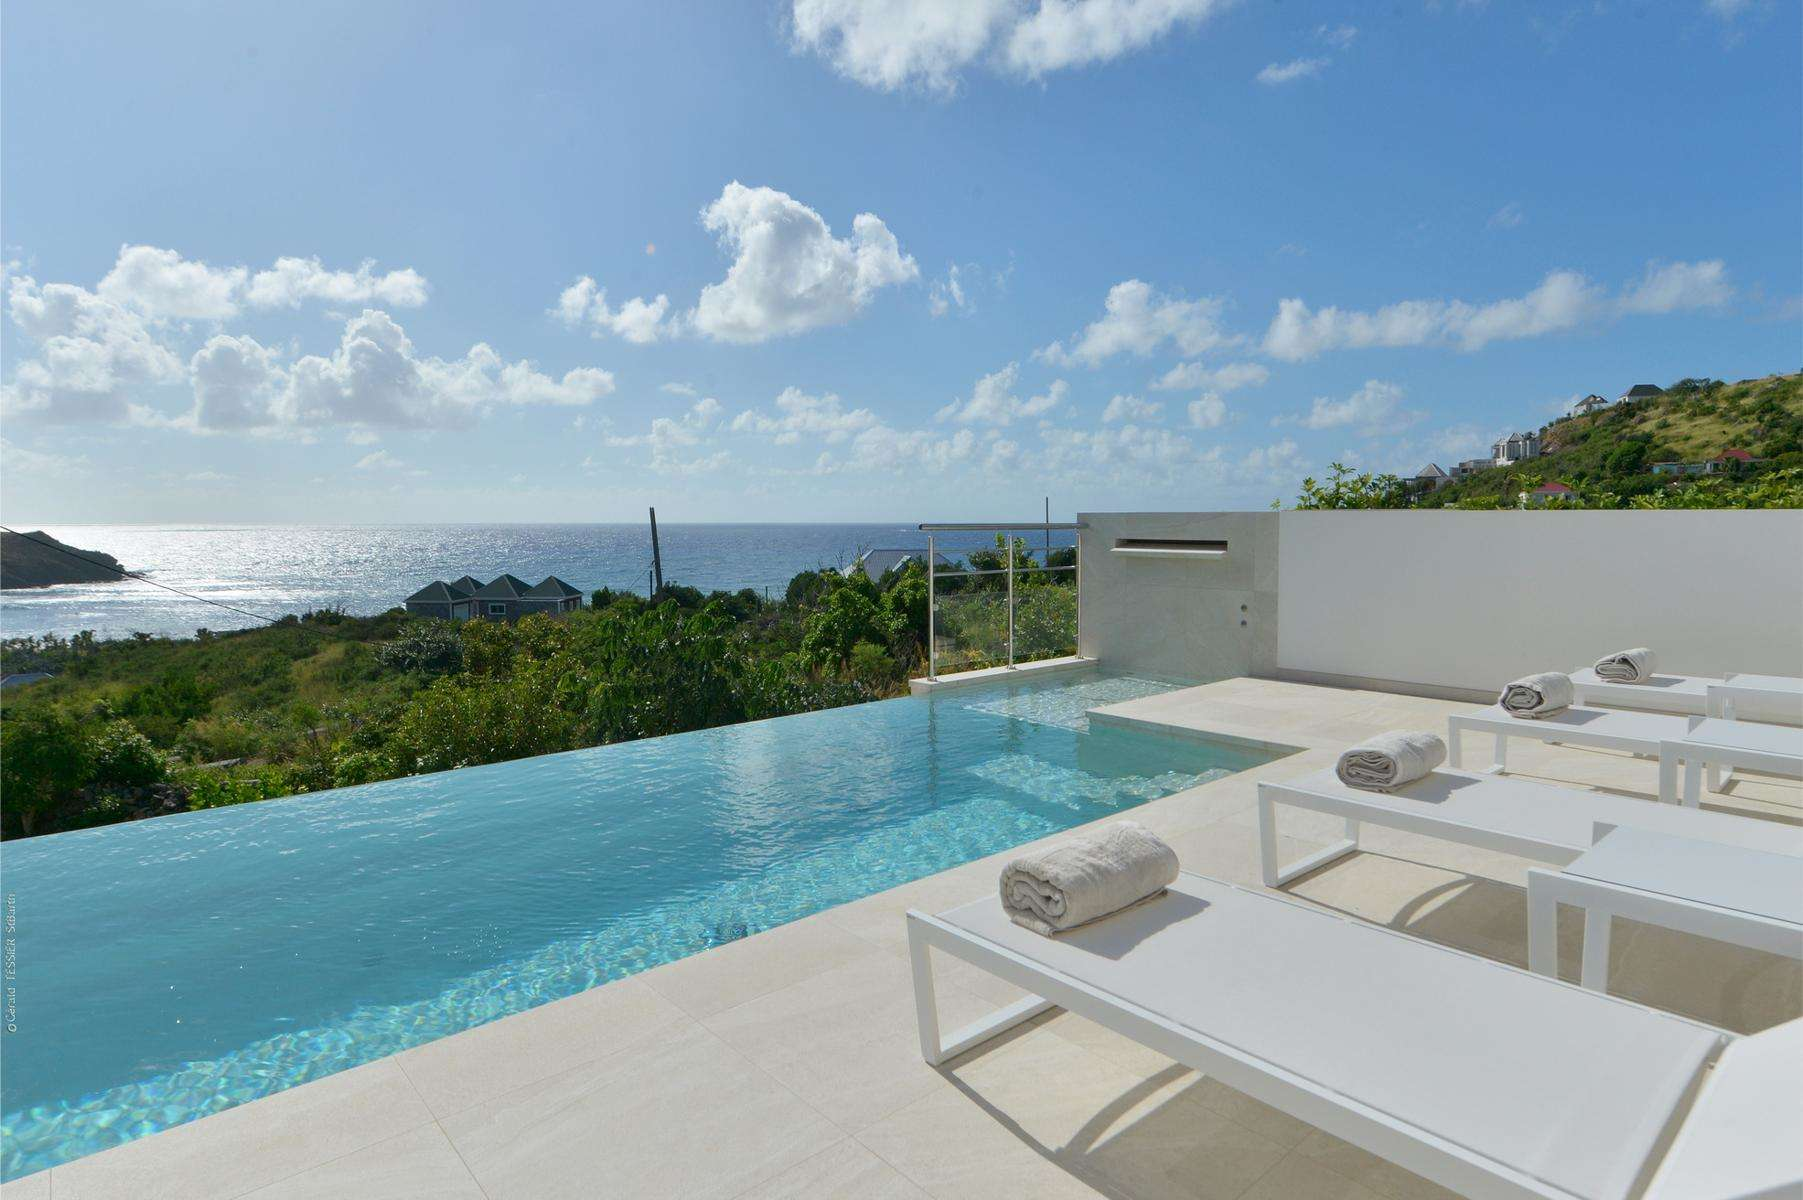 Luxury villa rentals caribbean - St barthelemy - Toiny - No location 4 - South Wave - Image 1/28